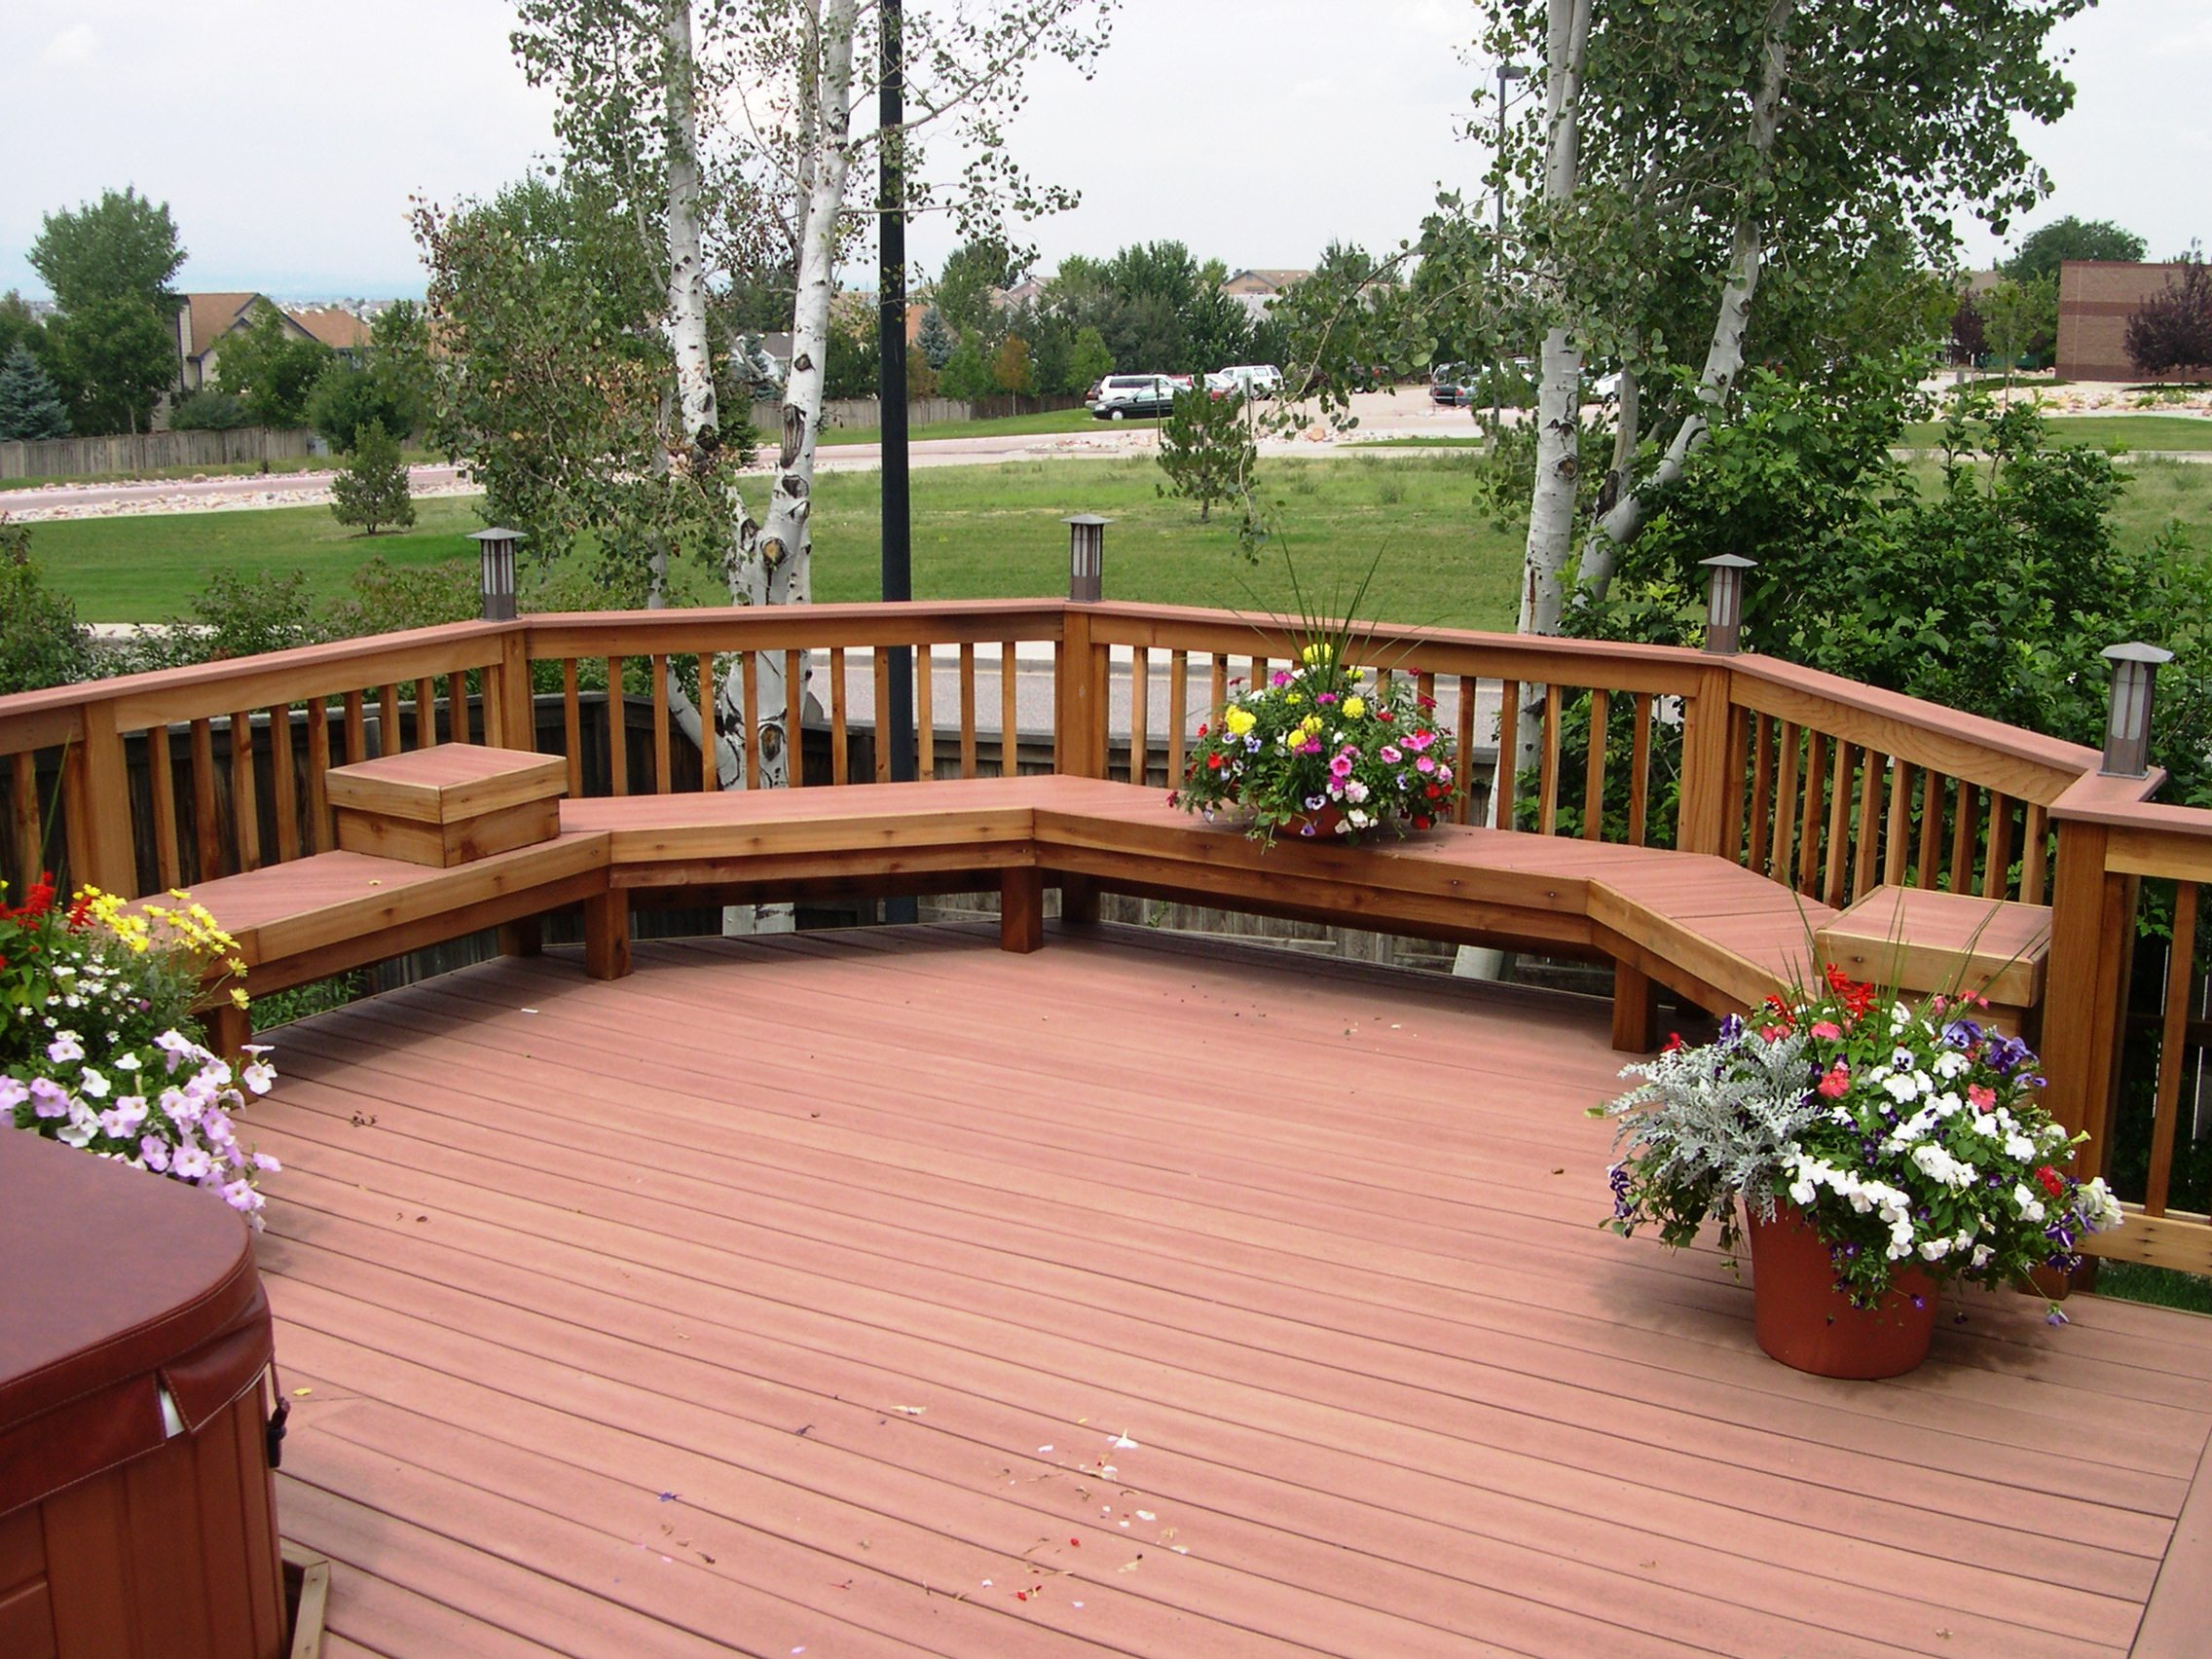 Awesome Home Deck Designs - HomesFeed on Patio With Deck Ideas id=98252